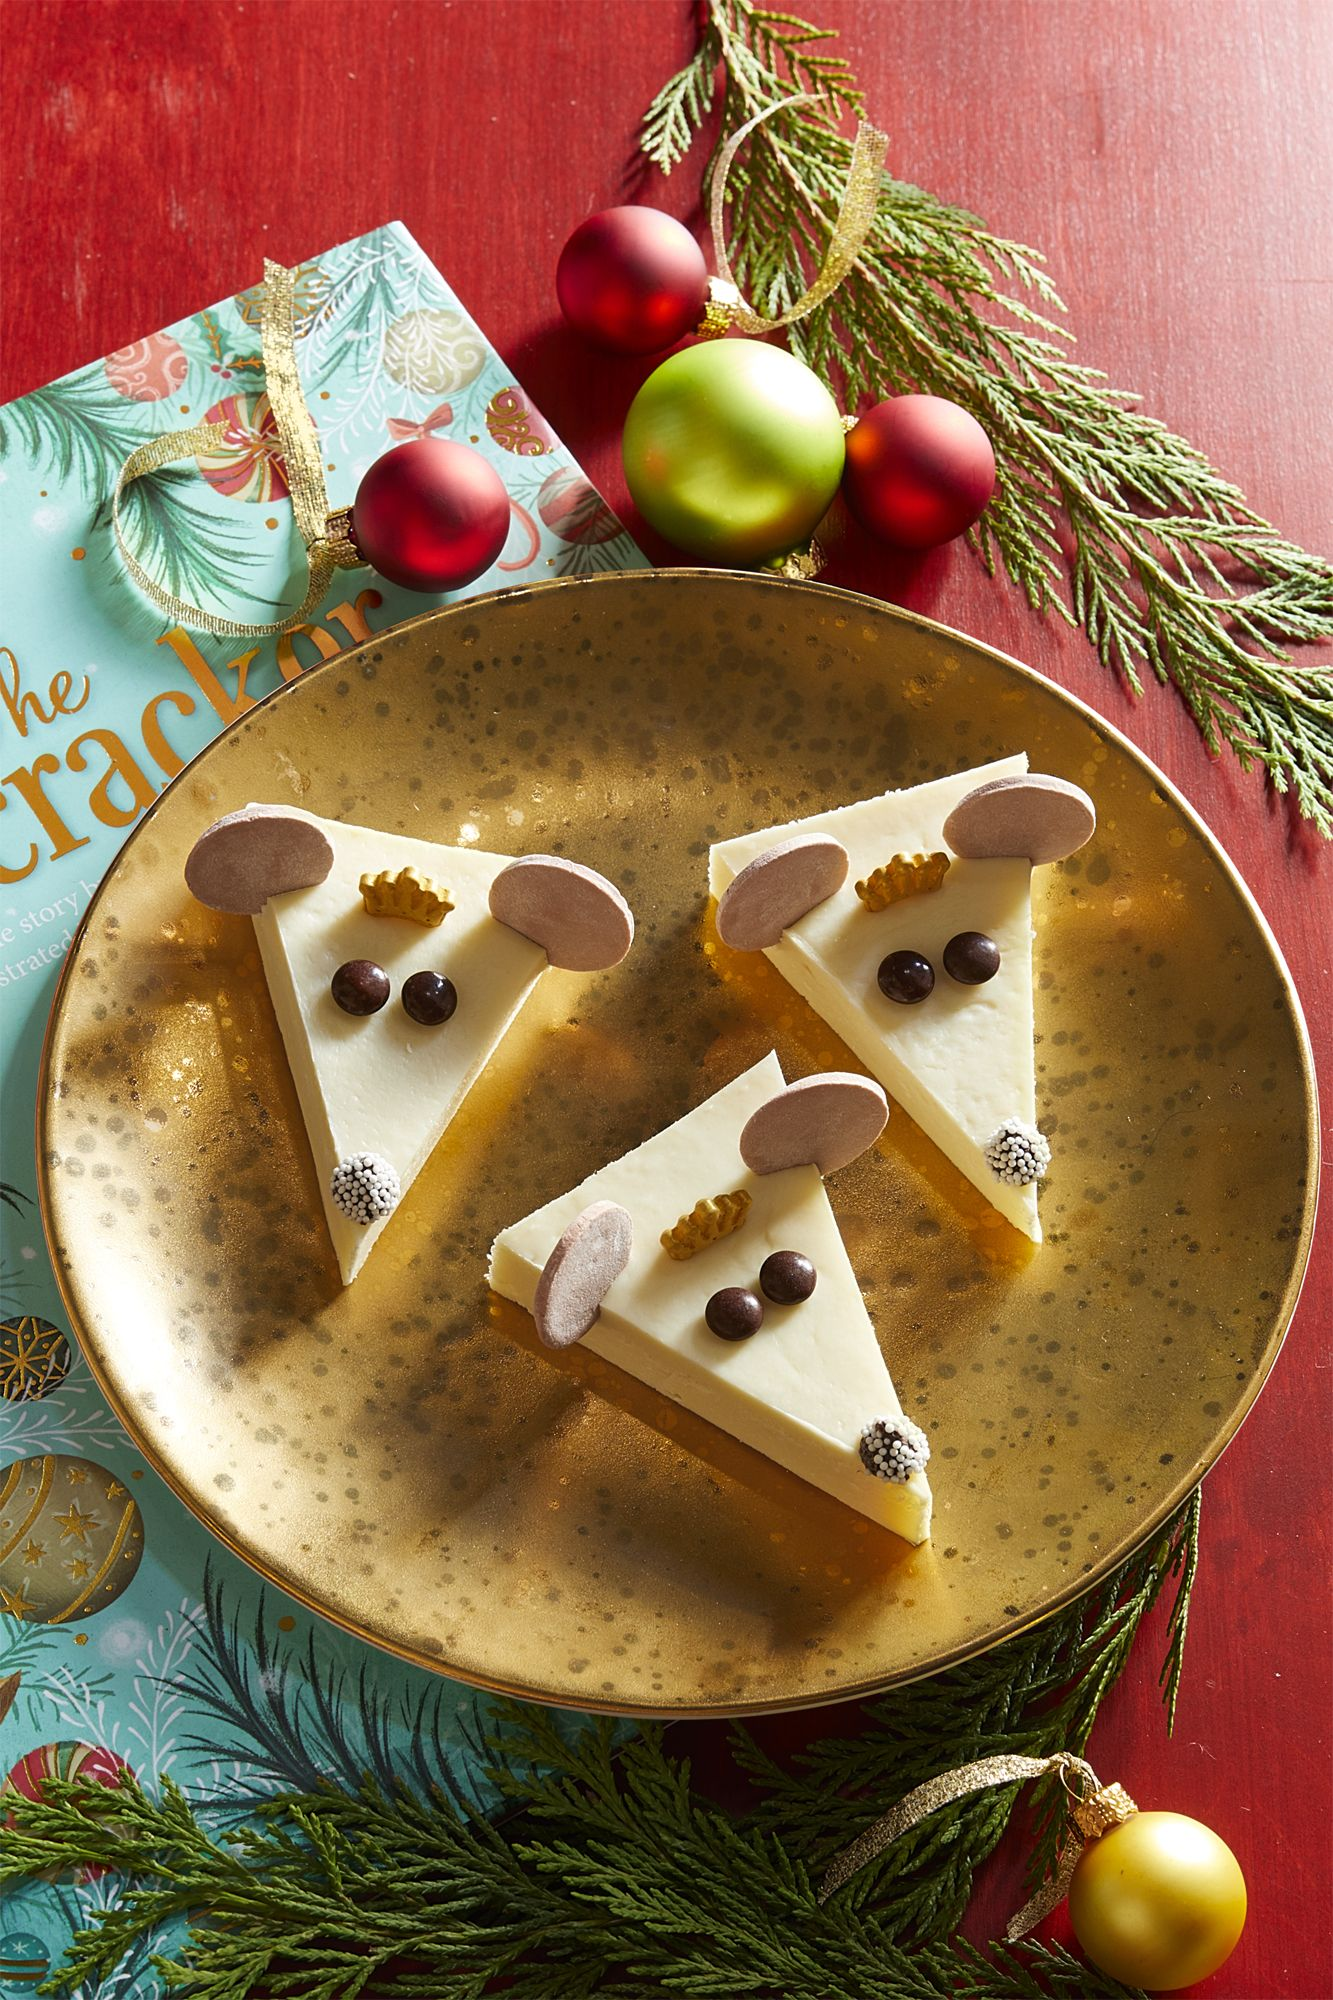 64 Easy Christmas Dessert Recipes Best Ideas For Fun Holiday Sweets